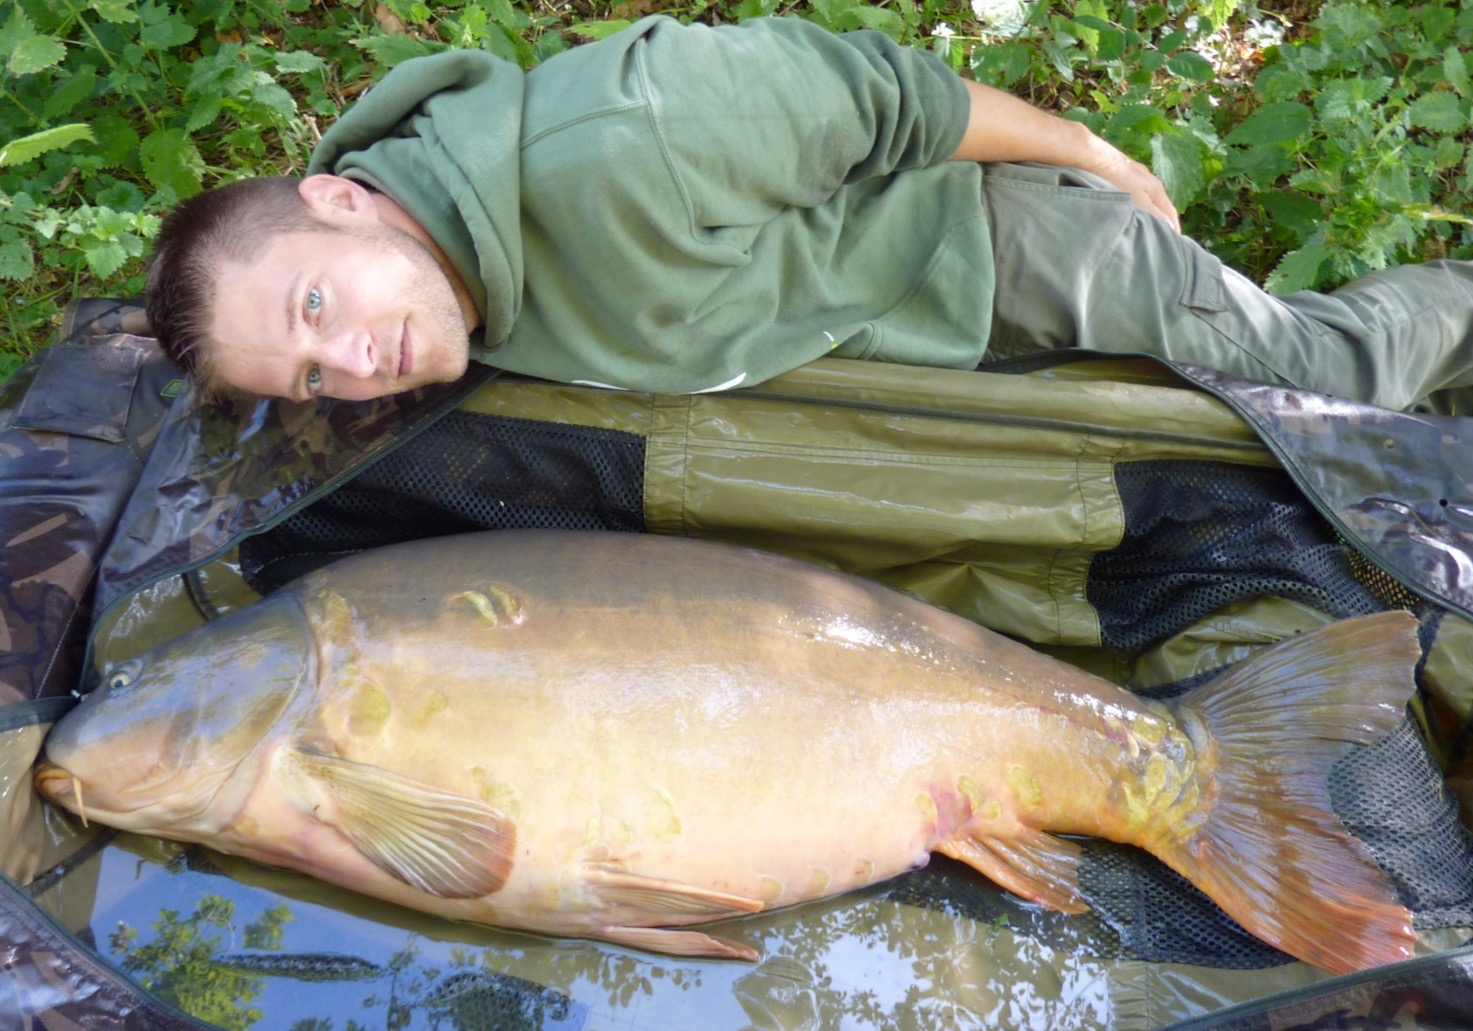 http://starbaits.com/fichiers/images/team/gallery/MARTIN_Greg/4.jpg